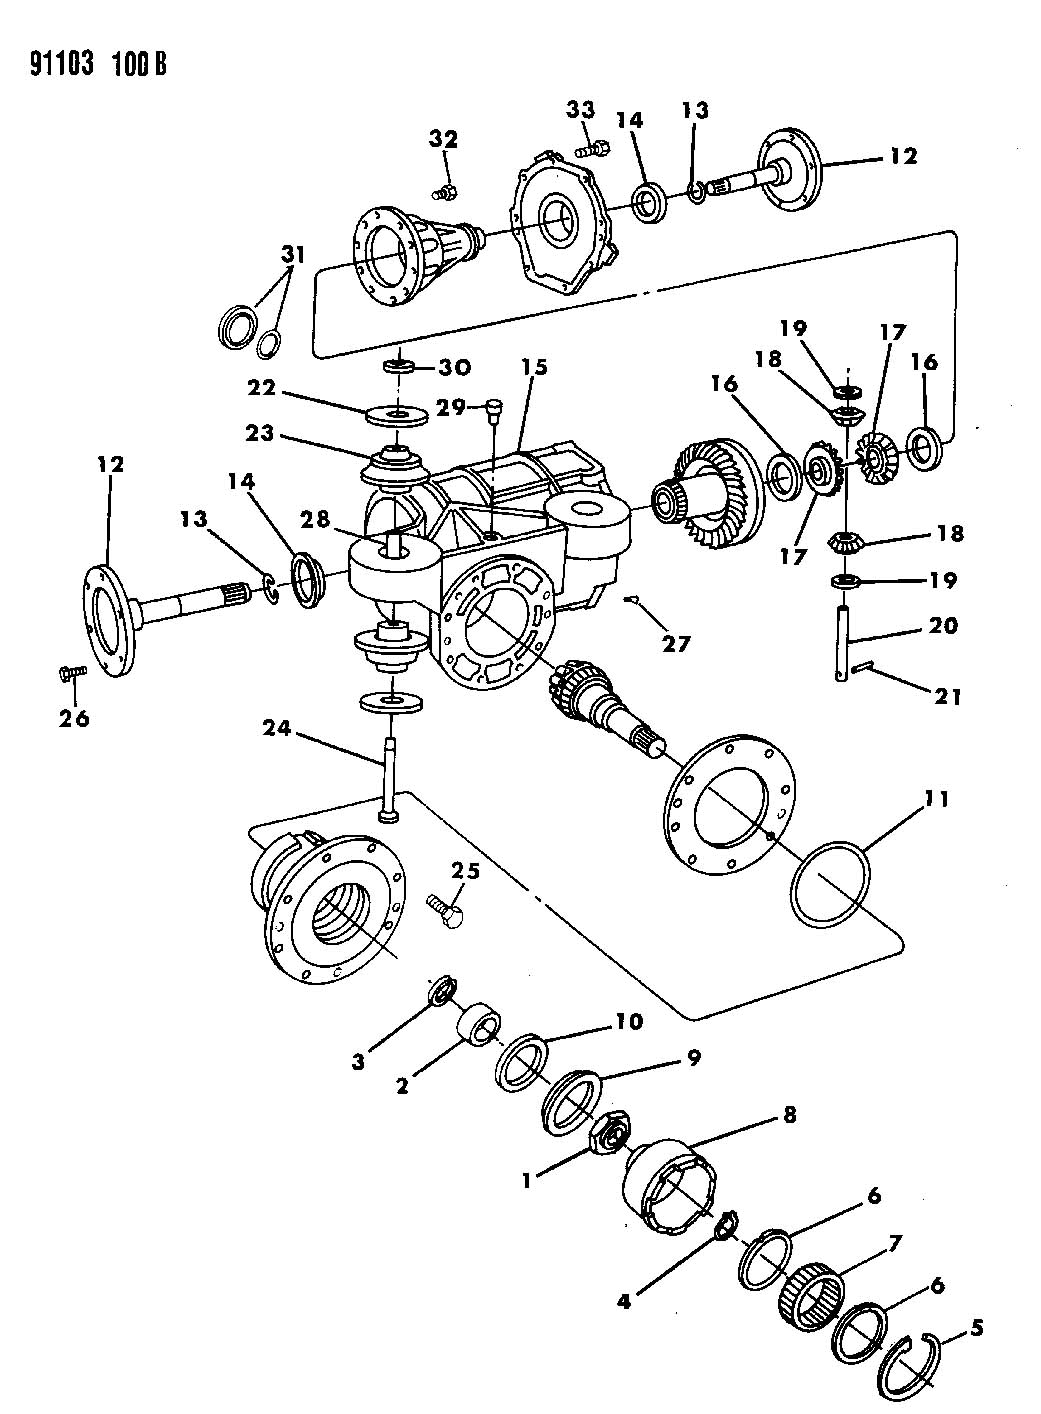 hight resolution of gmc w3500 wiring diagram gmc free engine image for user